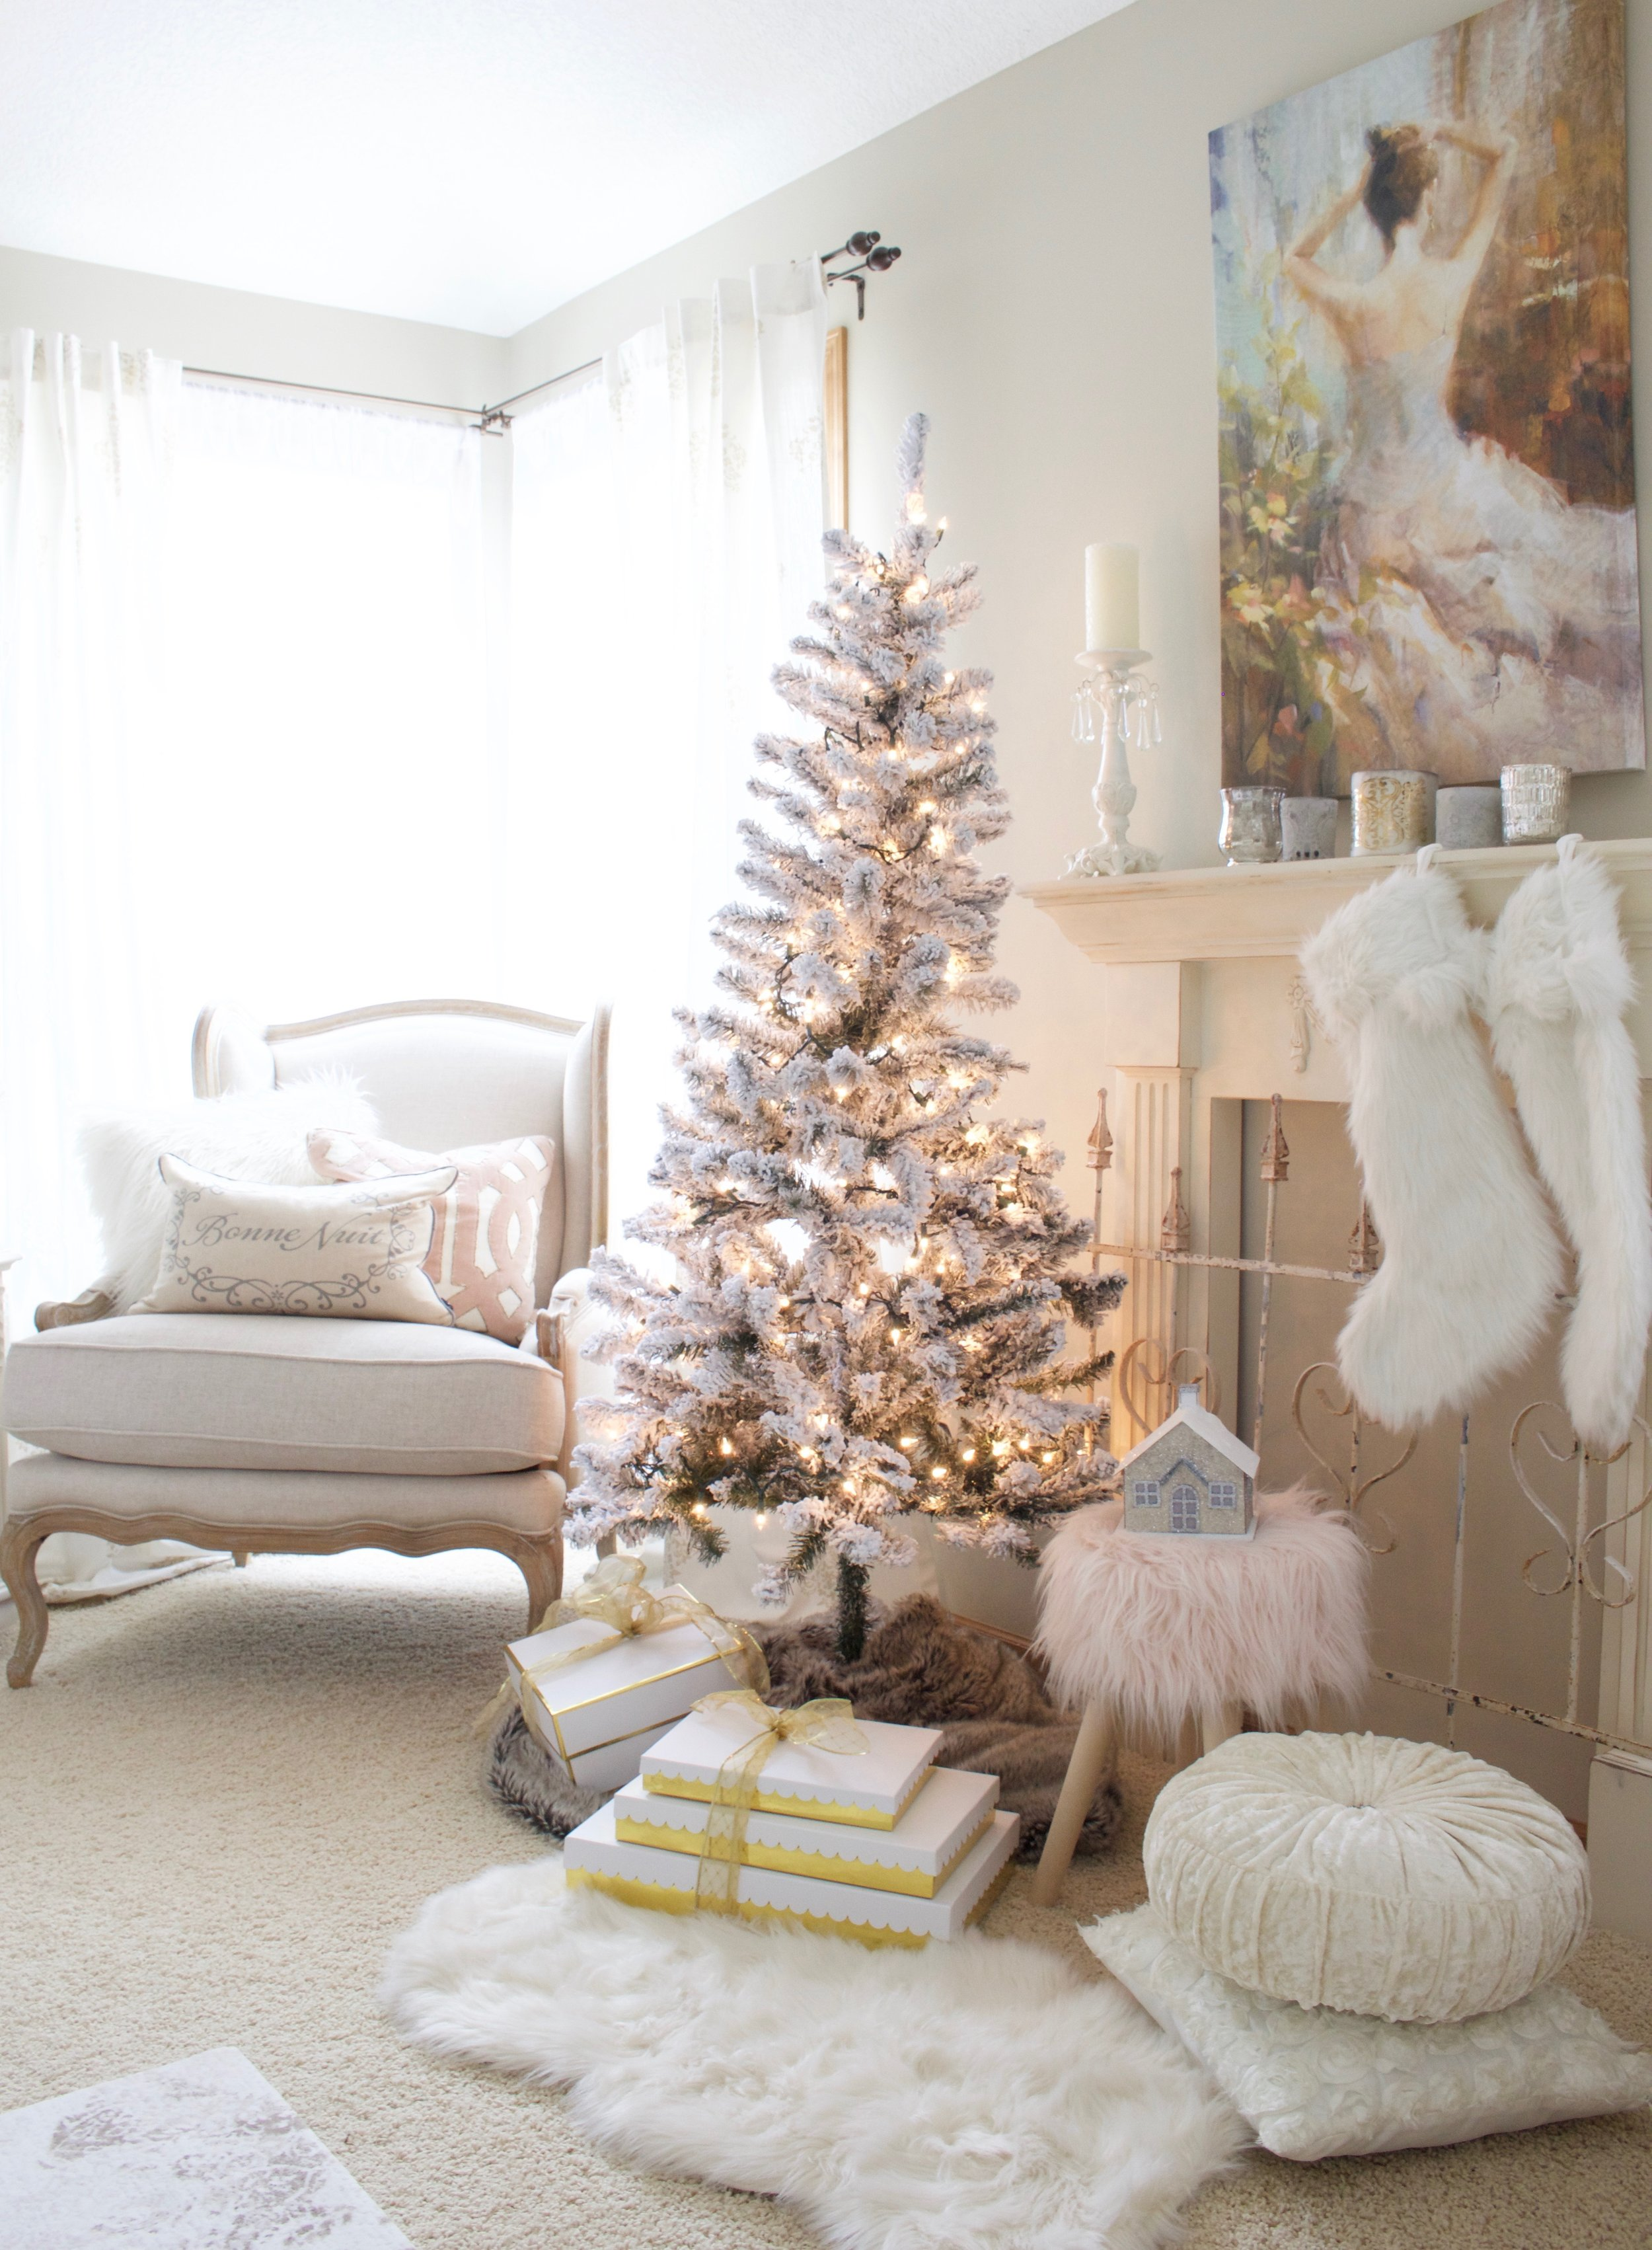 5f1894d14c192 Home For Christmas - A Blush Pink Bedroom - Styled With Lace